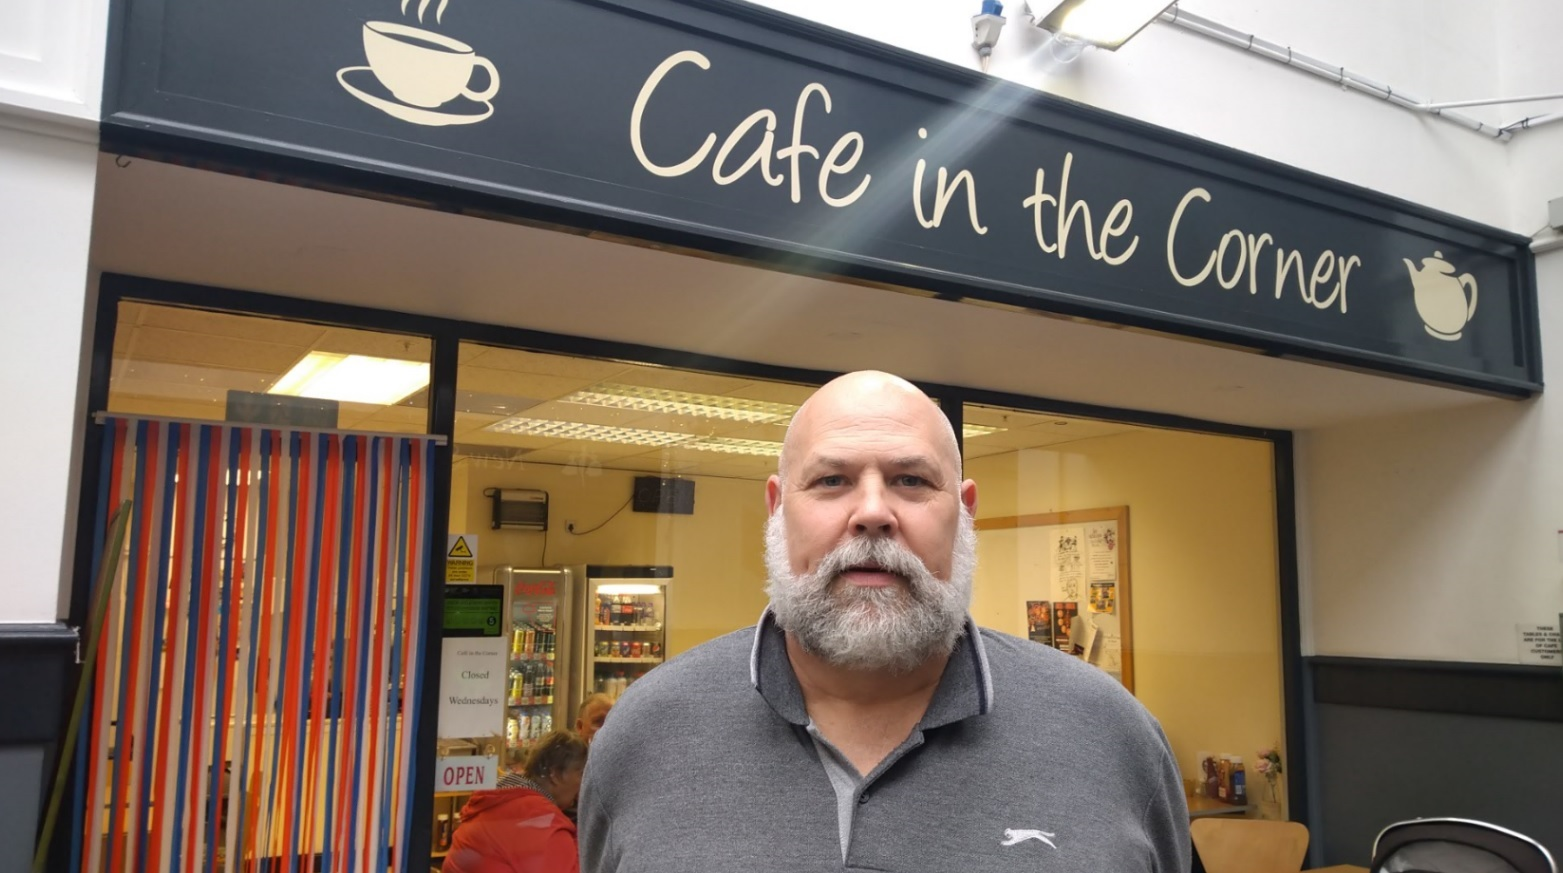 Trader of the week: Cafe in the Corner, Wrexham